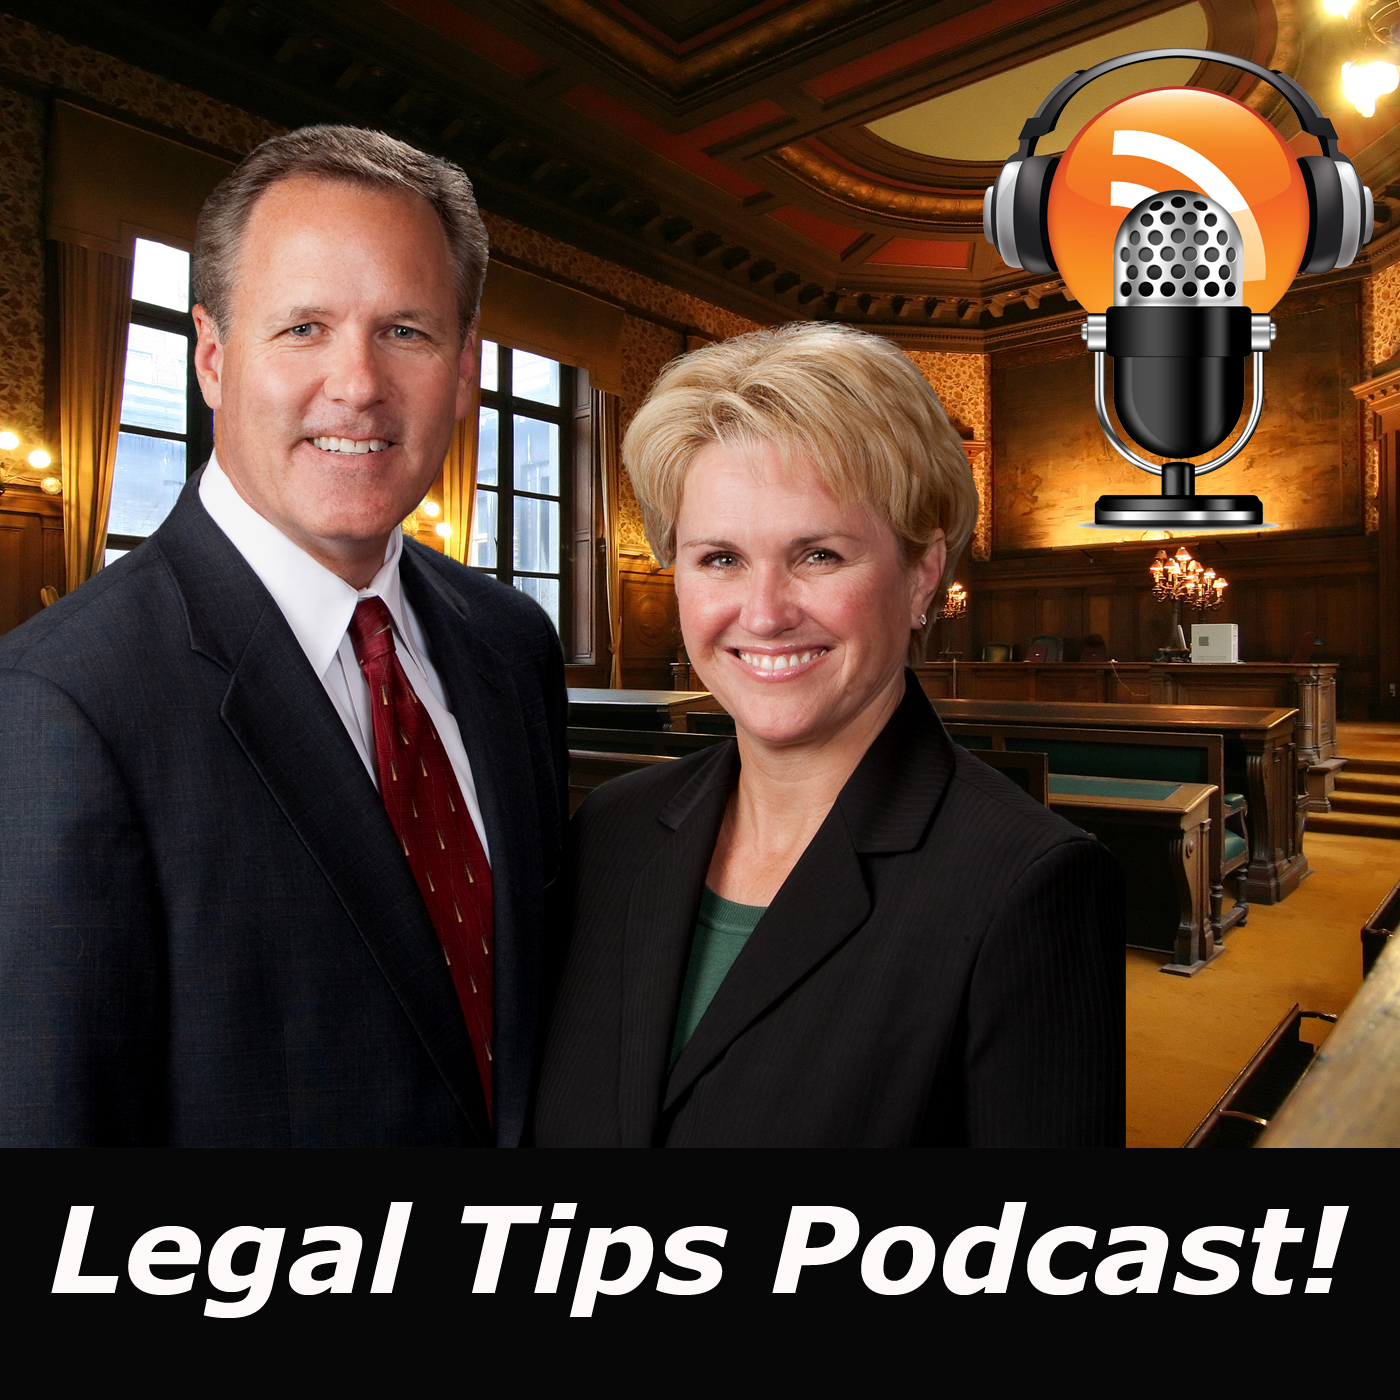 Mitch and Lisa Podcast re Legal Tips